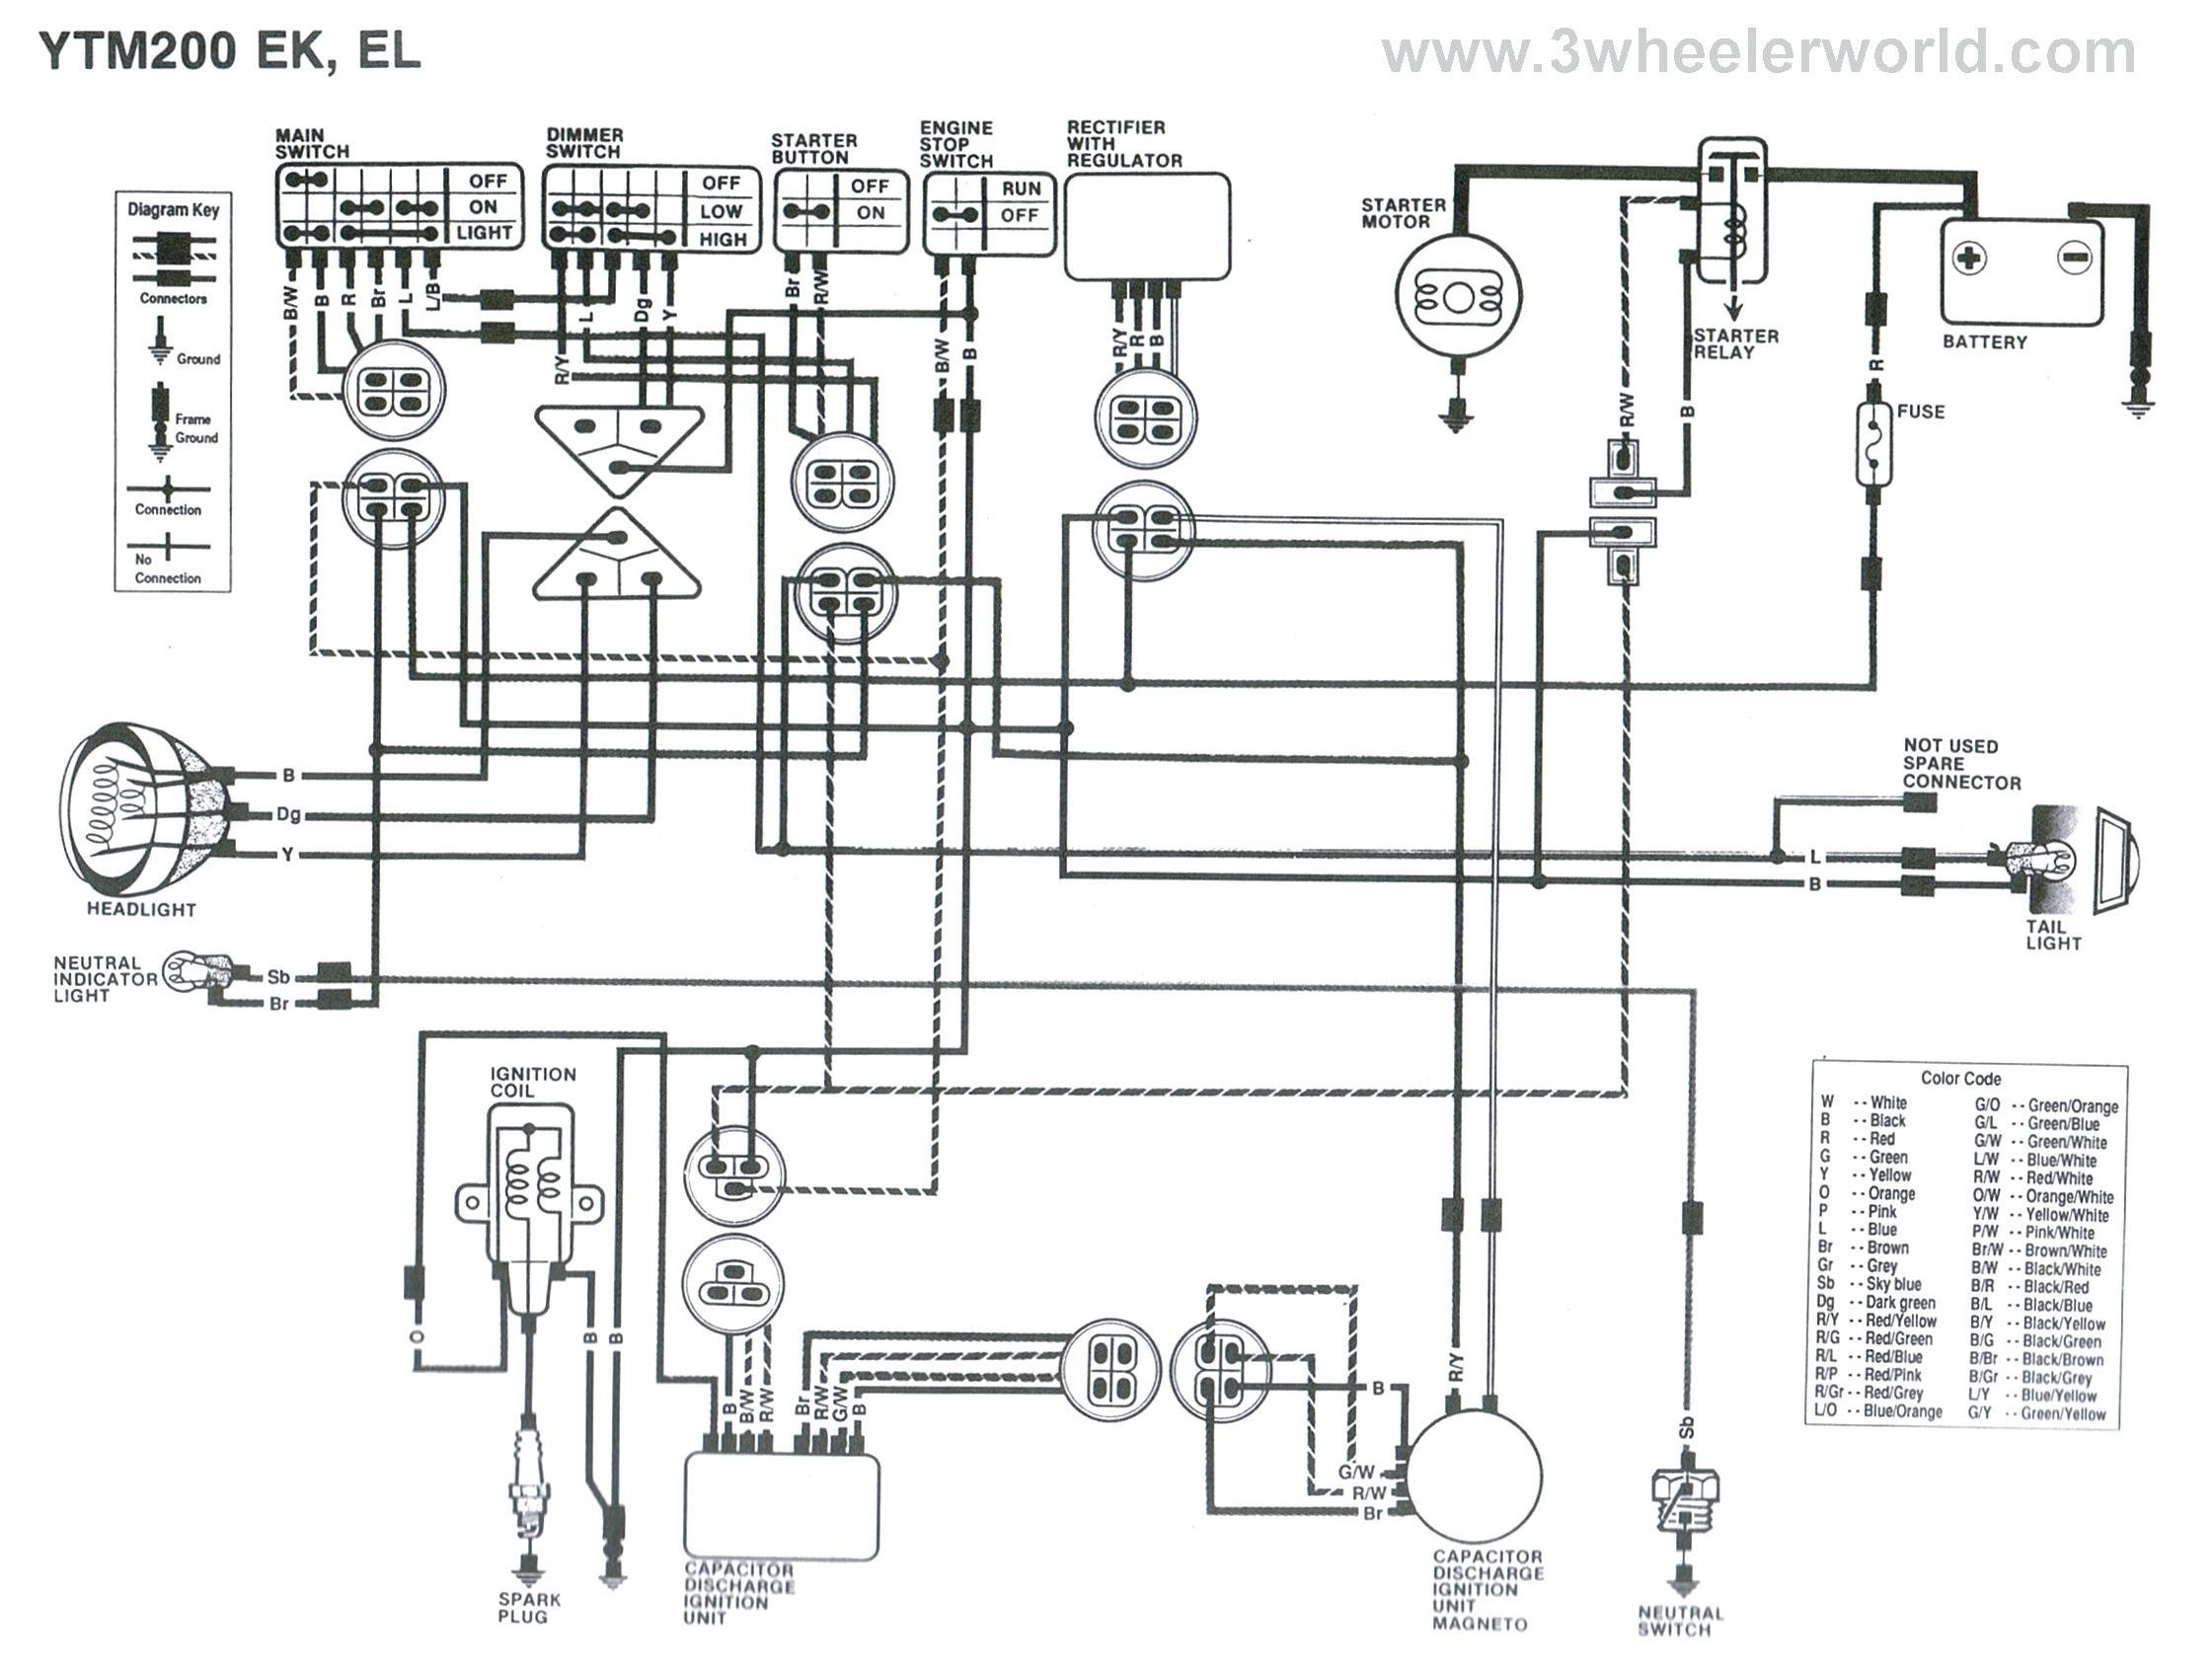 Nissan Outboard Tachometer Wiring   Wiring Diagram - Yamaha Outboard Tachometer Wiring Diagram